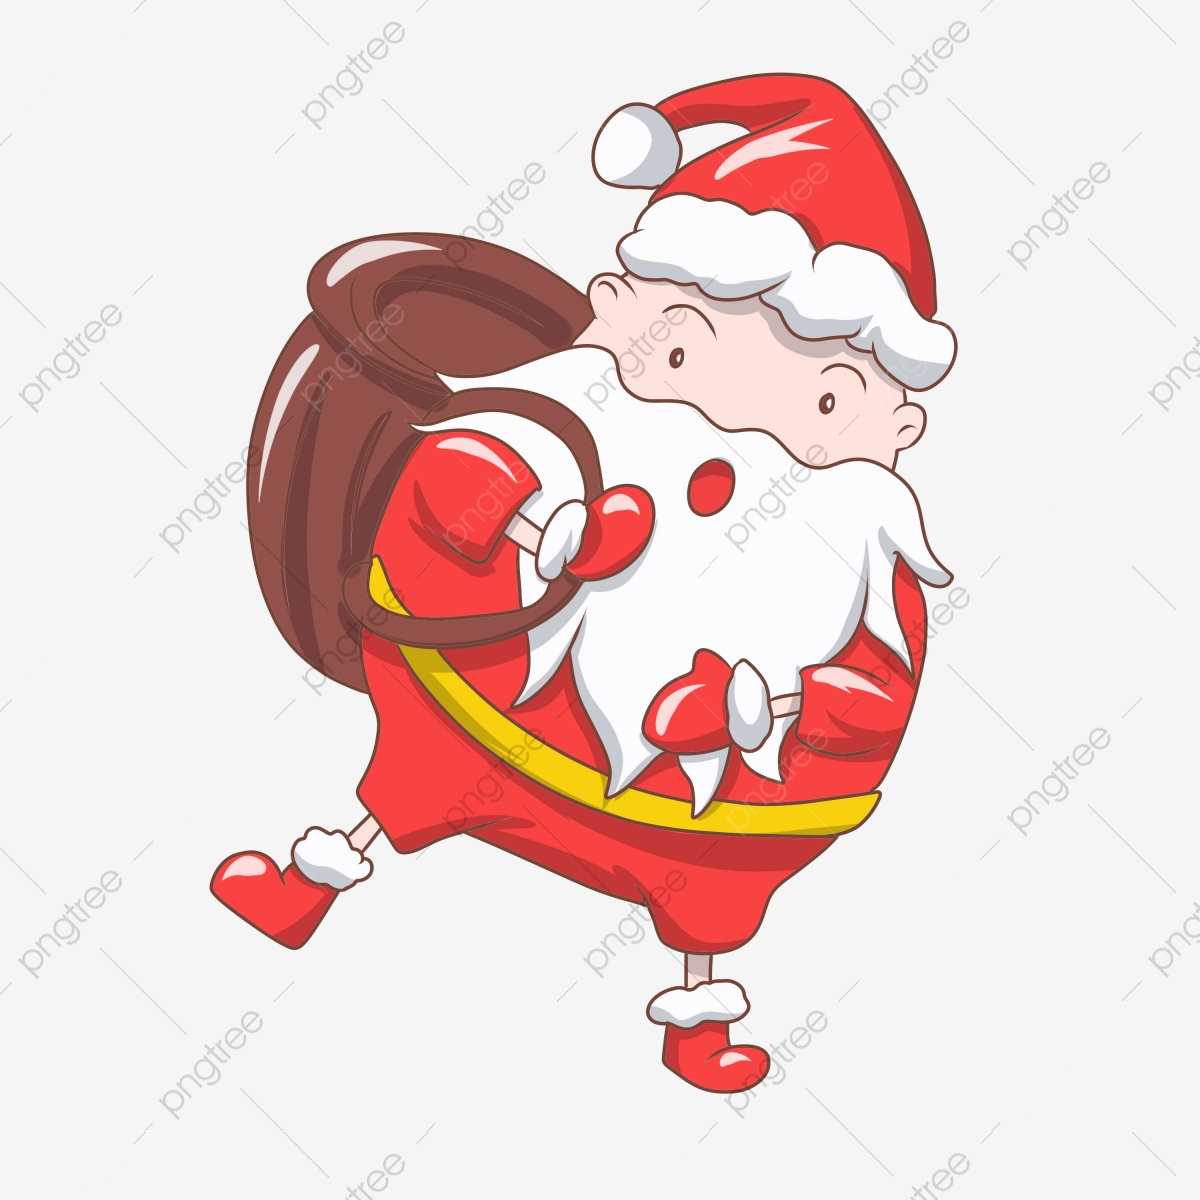 Old Man With Brown Bag Cute Santa Claus Merry Christmas Cartoon Santa Red Christmas Hat Old Man In Red Santa Illustrator Png Transparent Clipart Image And Psd File For Free Download